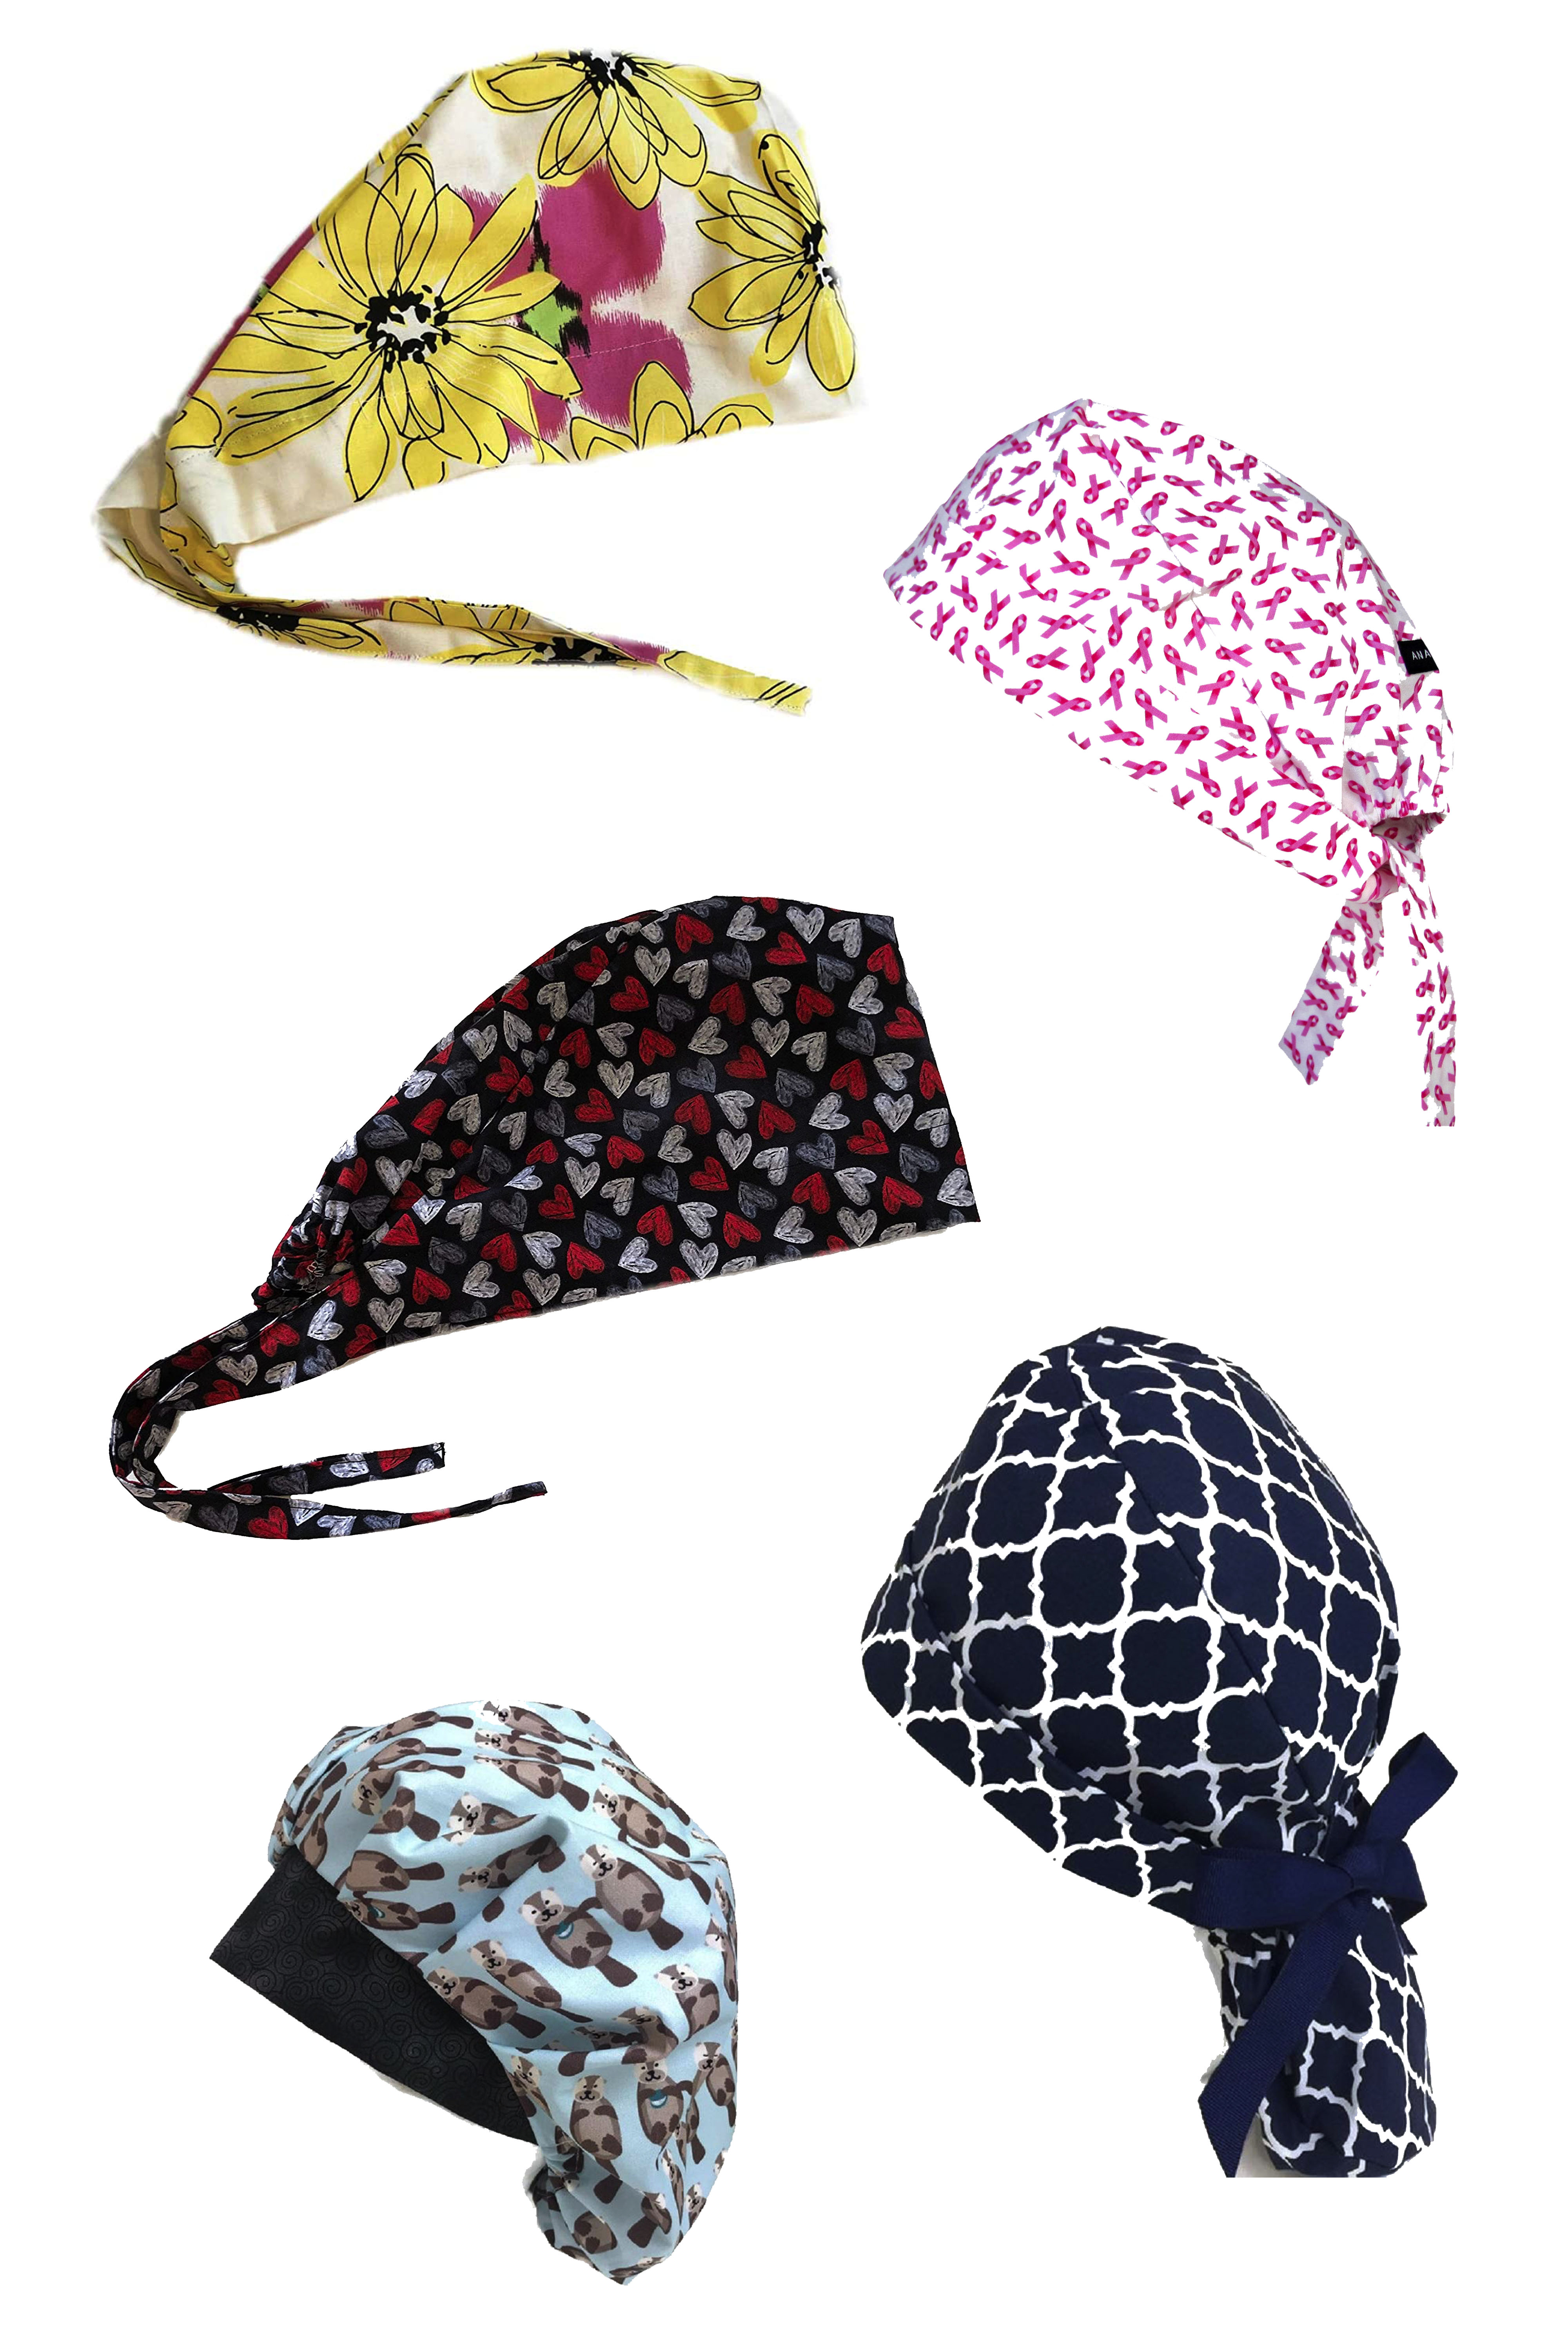 Best Scrub Cap Patterns To Diy For Health Care Workers One Crafdiy Girl